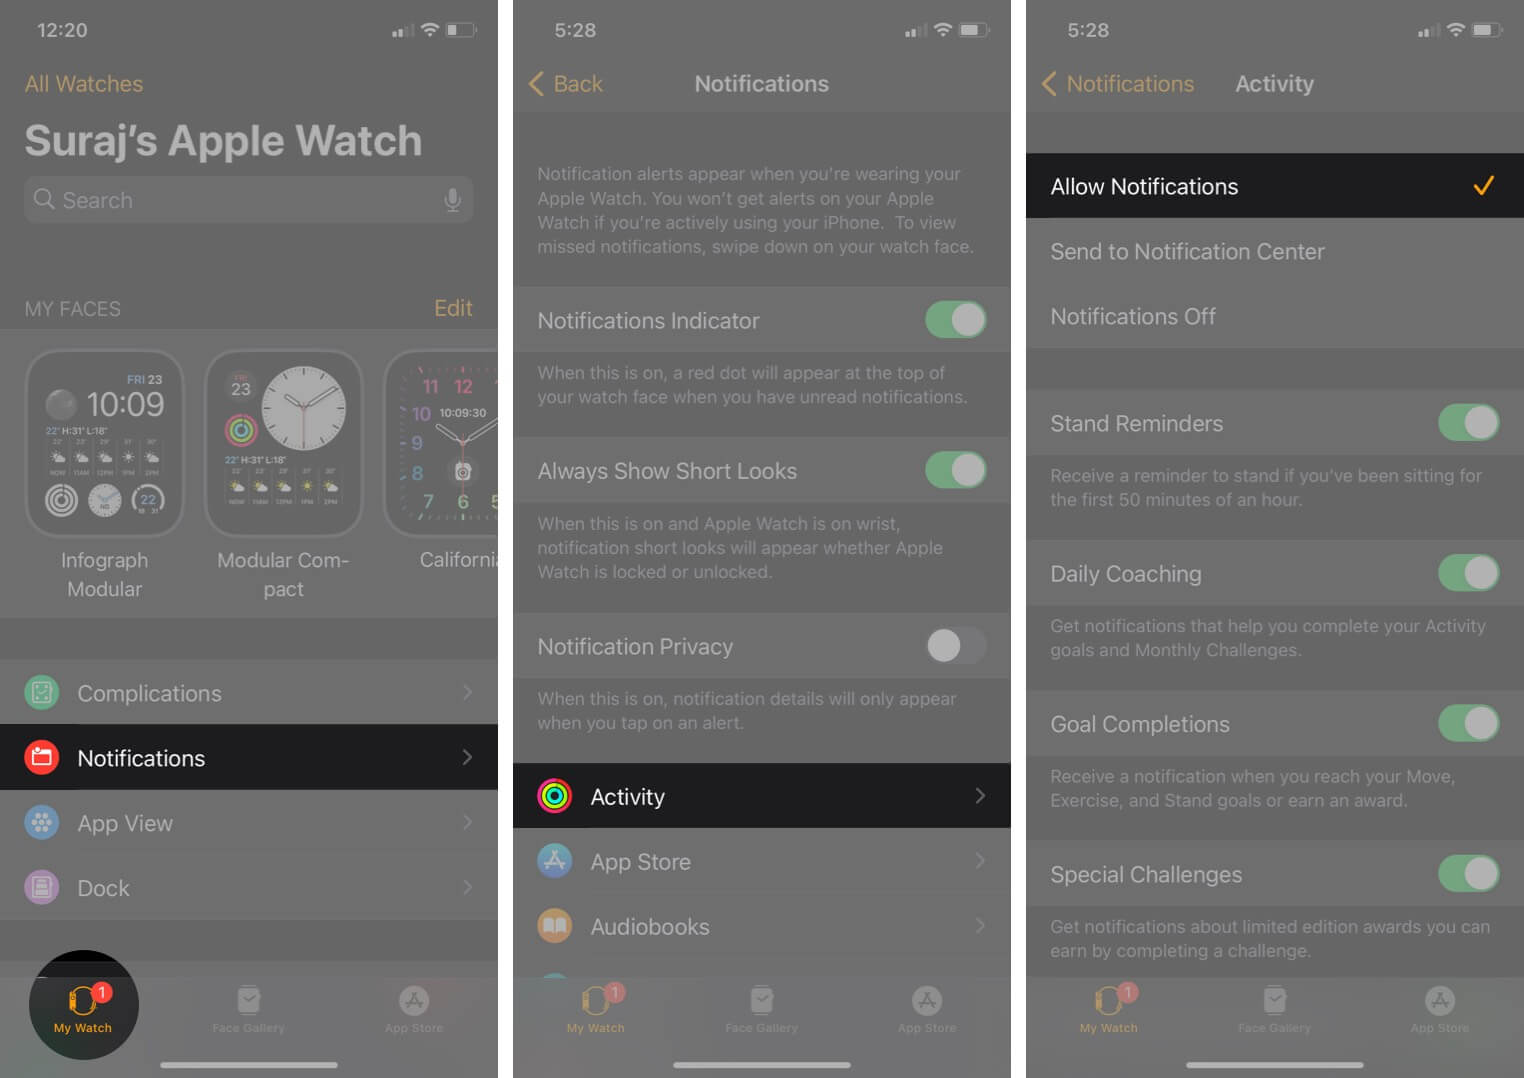 open watch app tap on notifications in my watch tab tap on activity and select allow notification on iphone